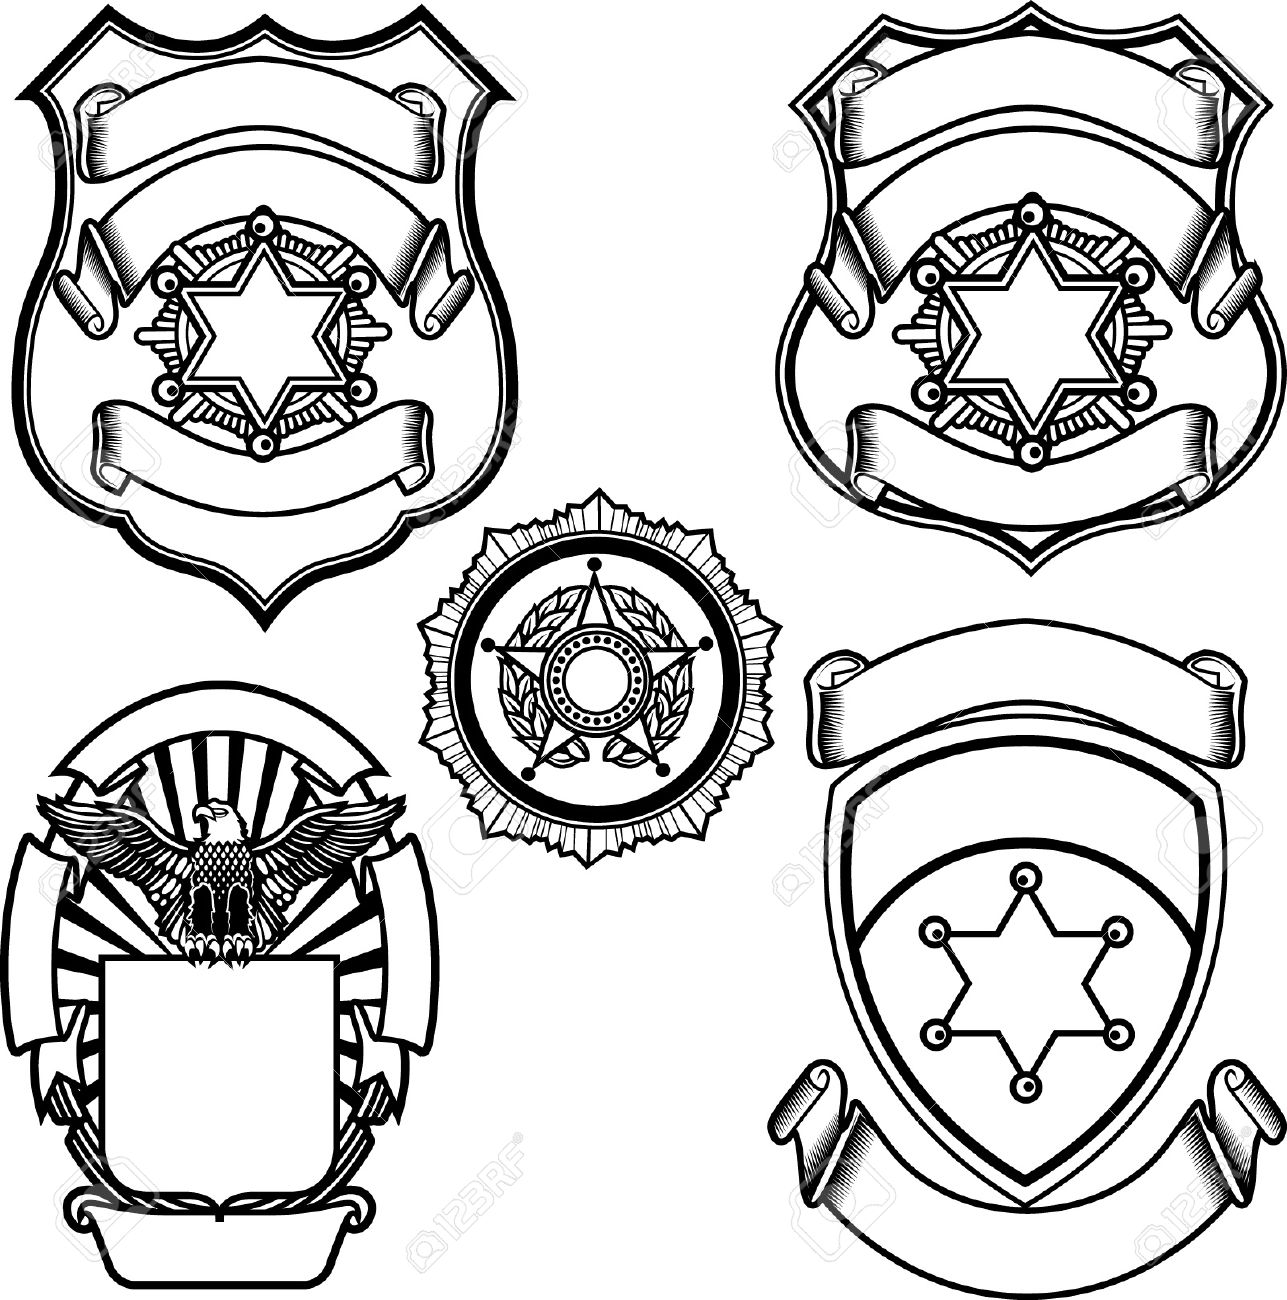 sheriff badge template free printable sheriff badge template rh polix info police badge clipart png police badge outline clipart